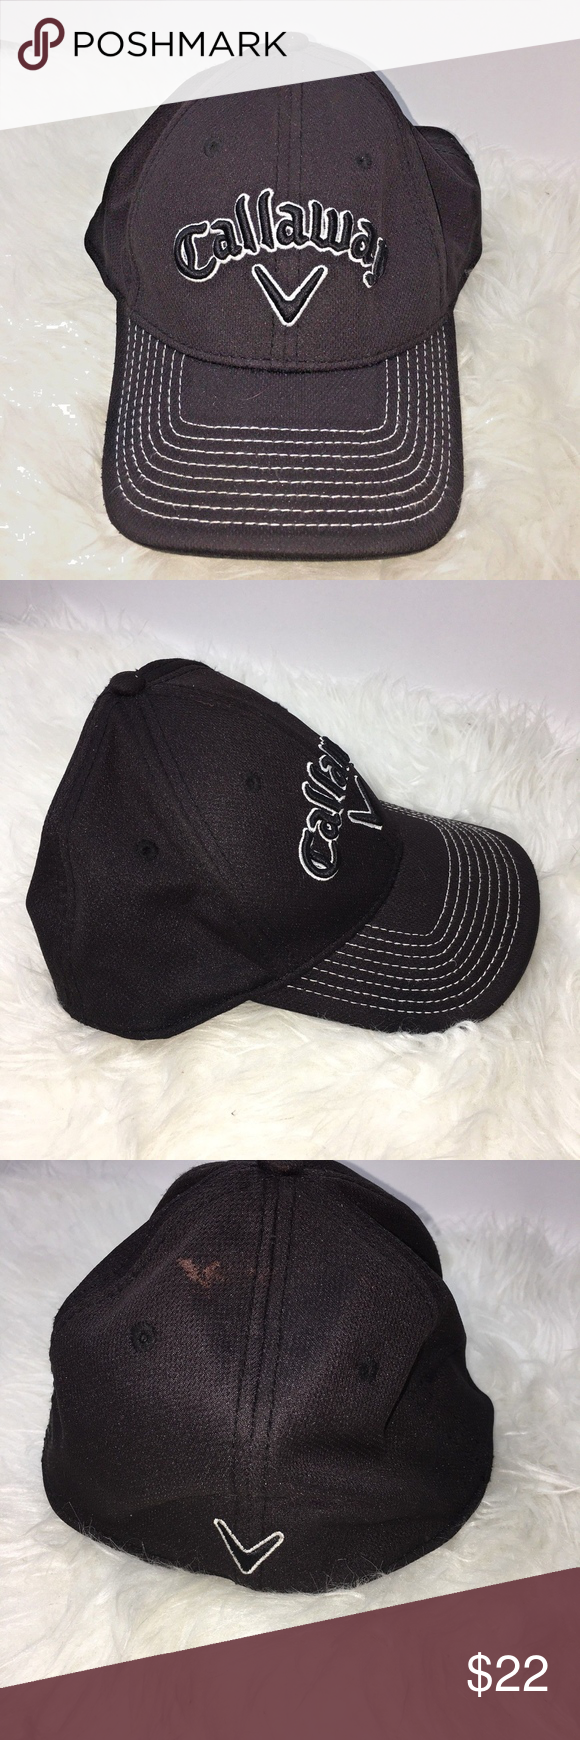 41976f1fdd9 I just added this listing on Poshmark  Callaway Golf Cap New Era Black  Adjustable.  shopmycloset  poshmark  fashion  shopping  style  forsale   Other